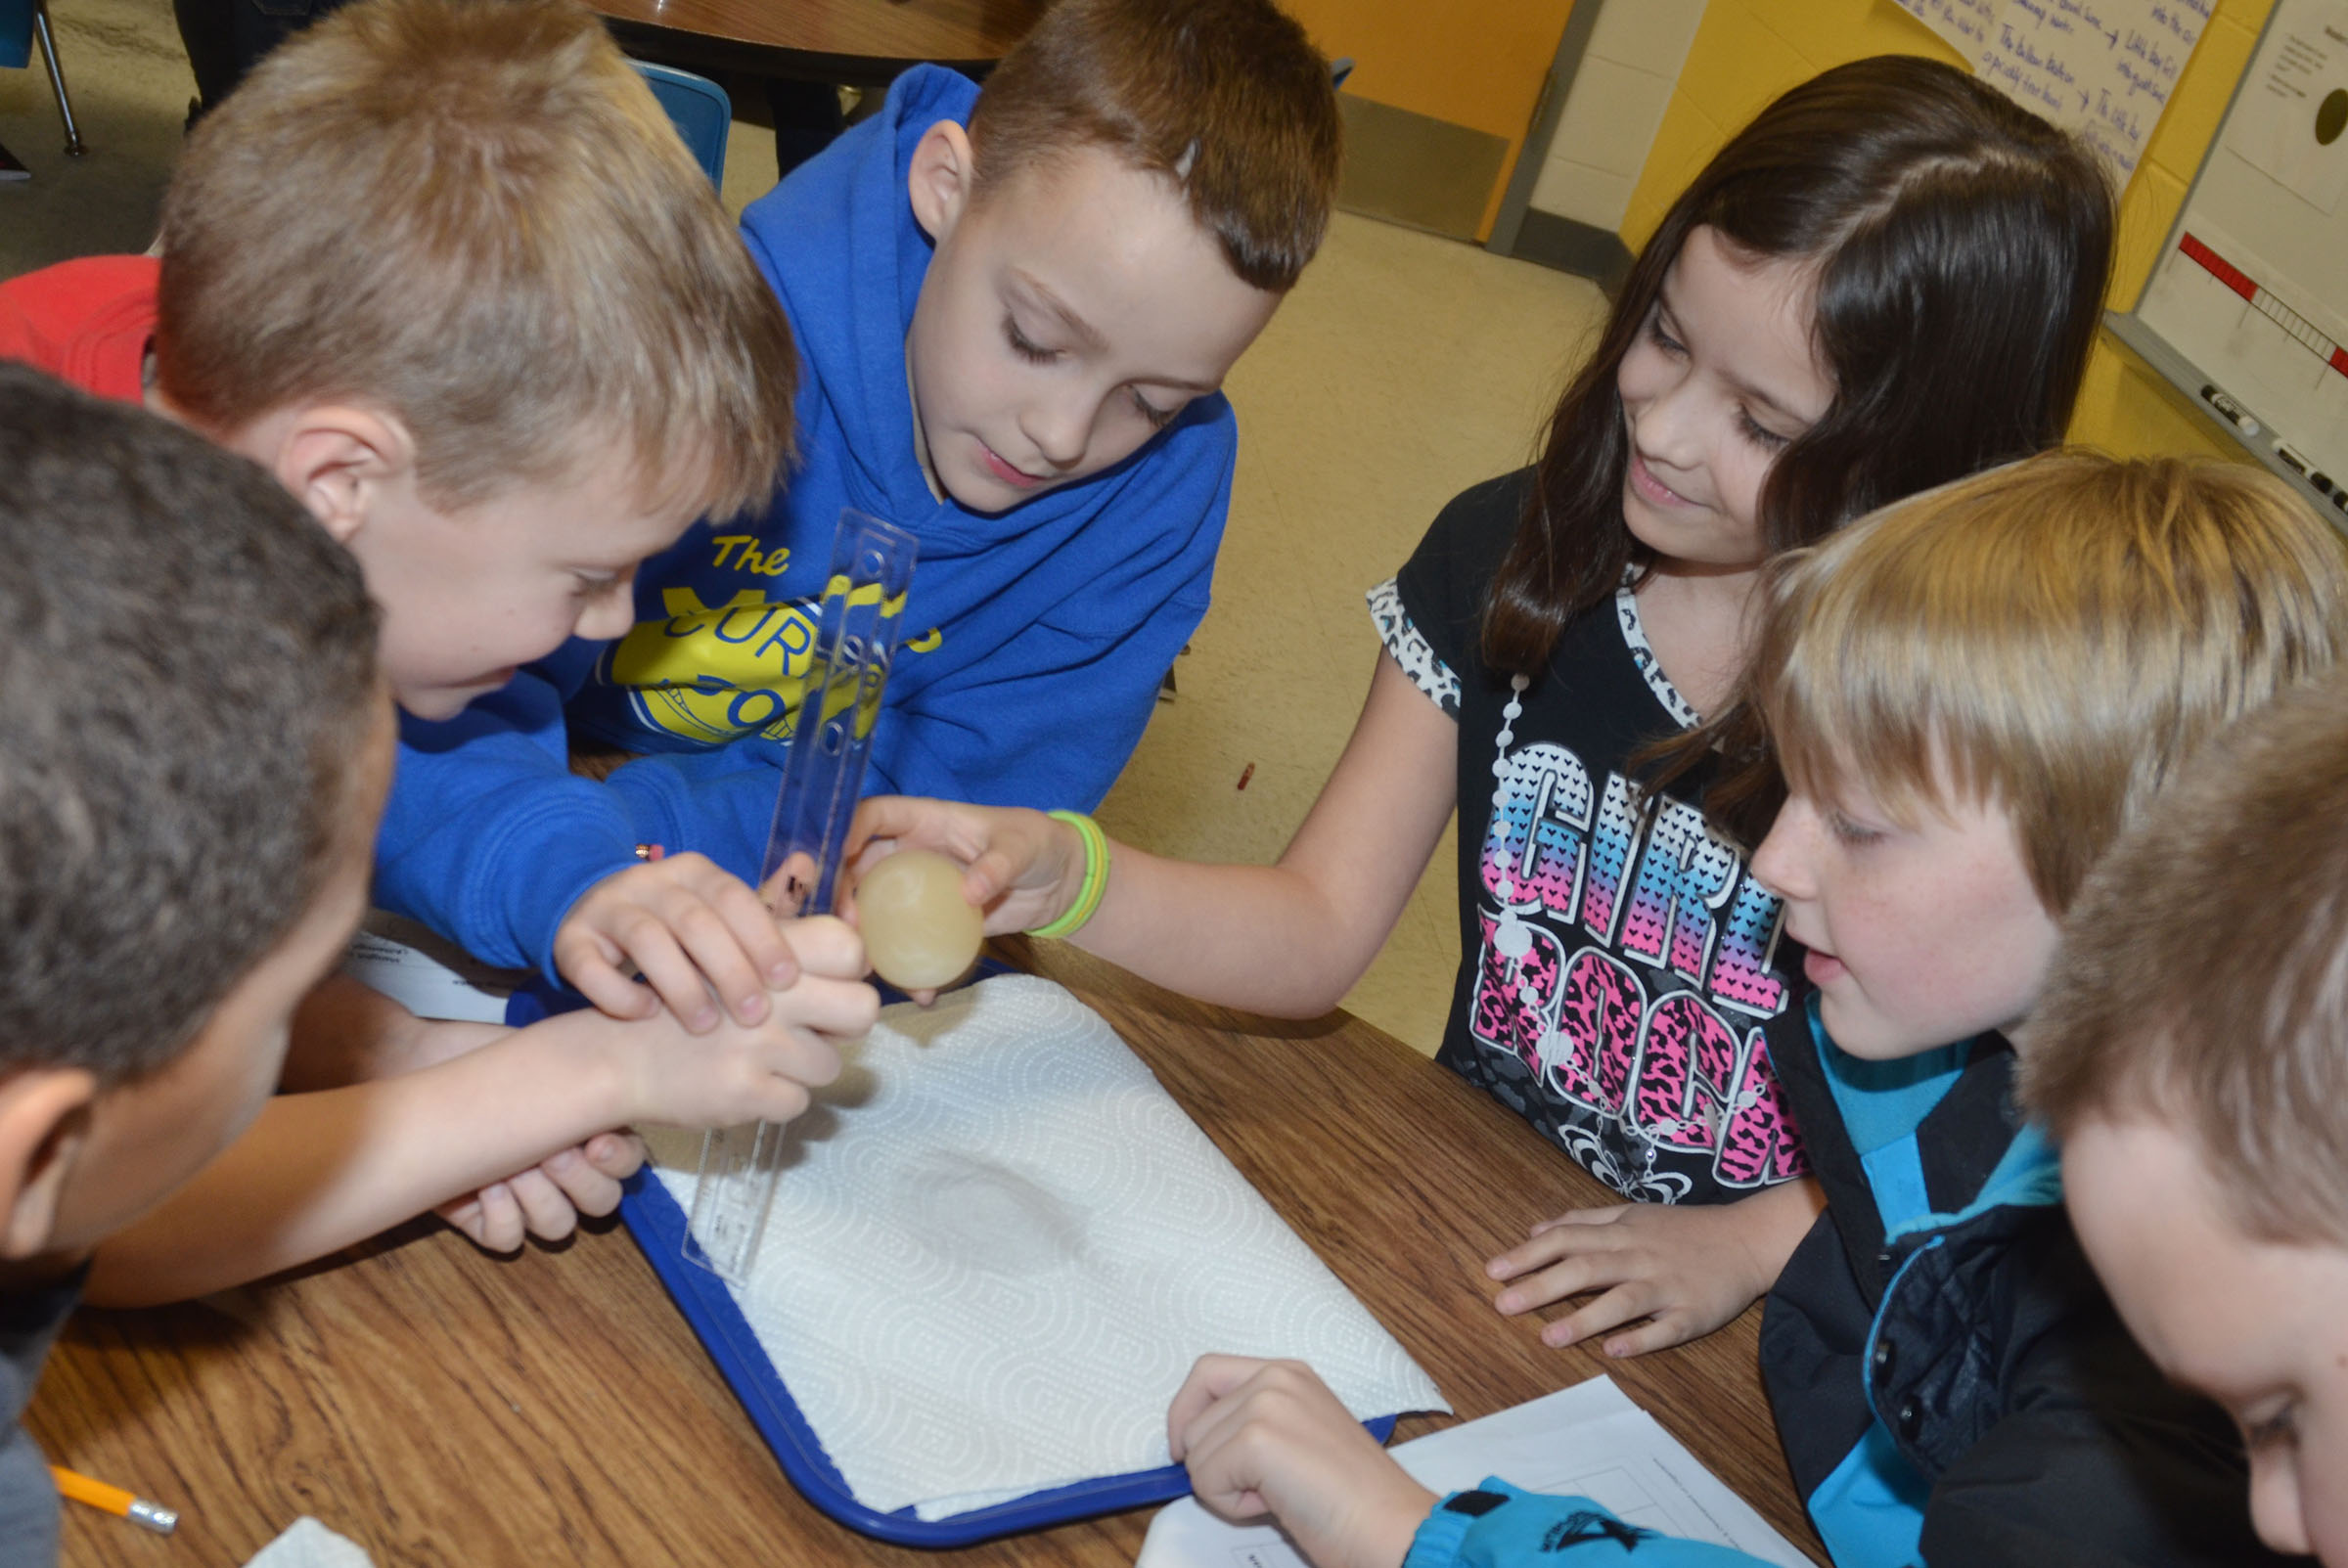 CES third-grader Alexis Wolford drops an egg to see if its membrane will protect it from breaking, as her classmates watch.